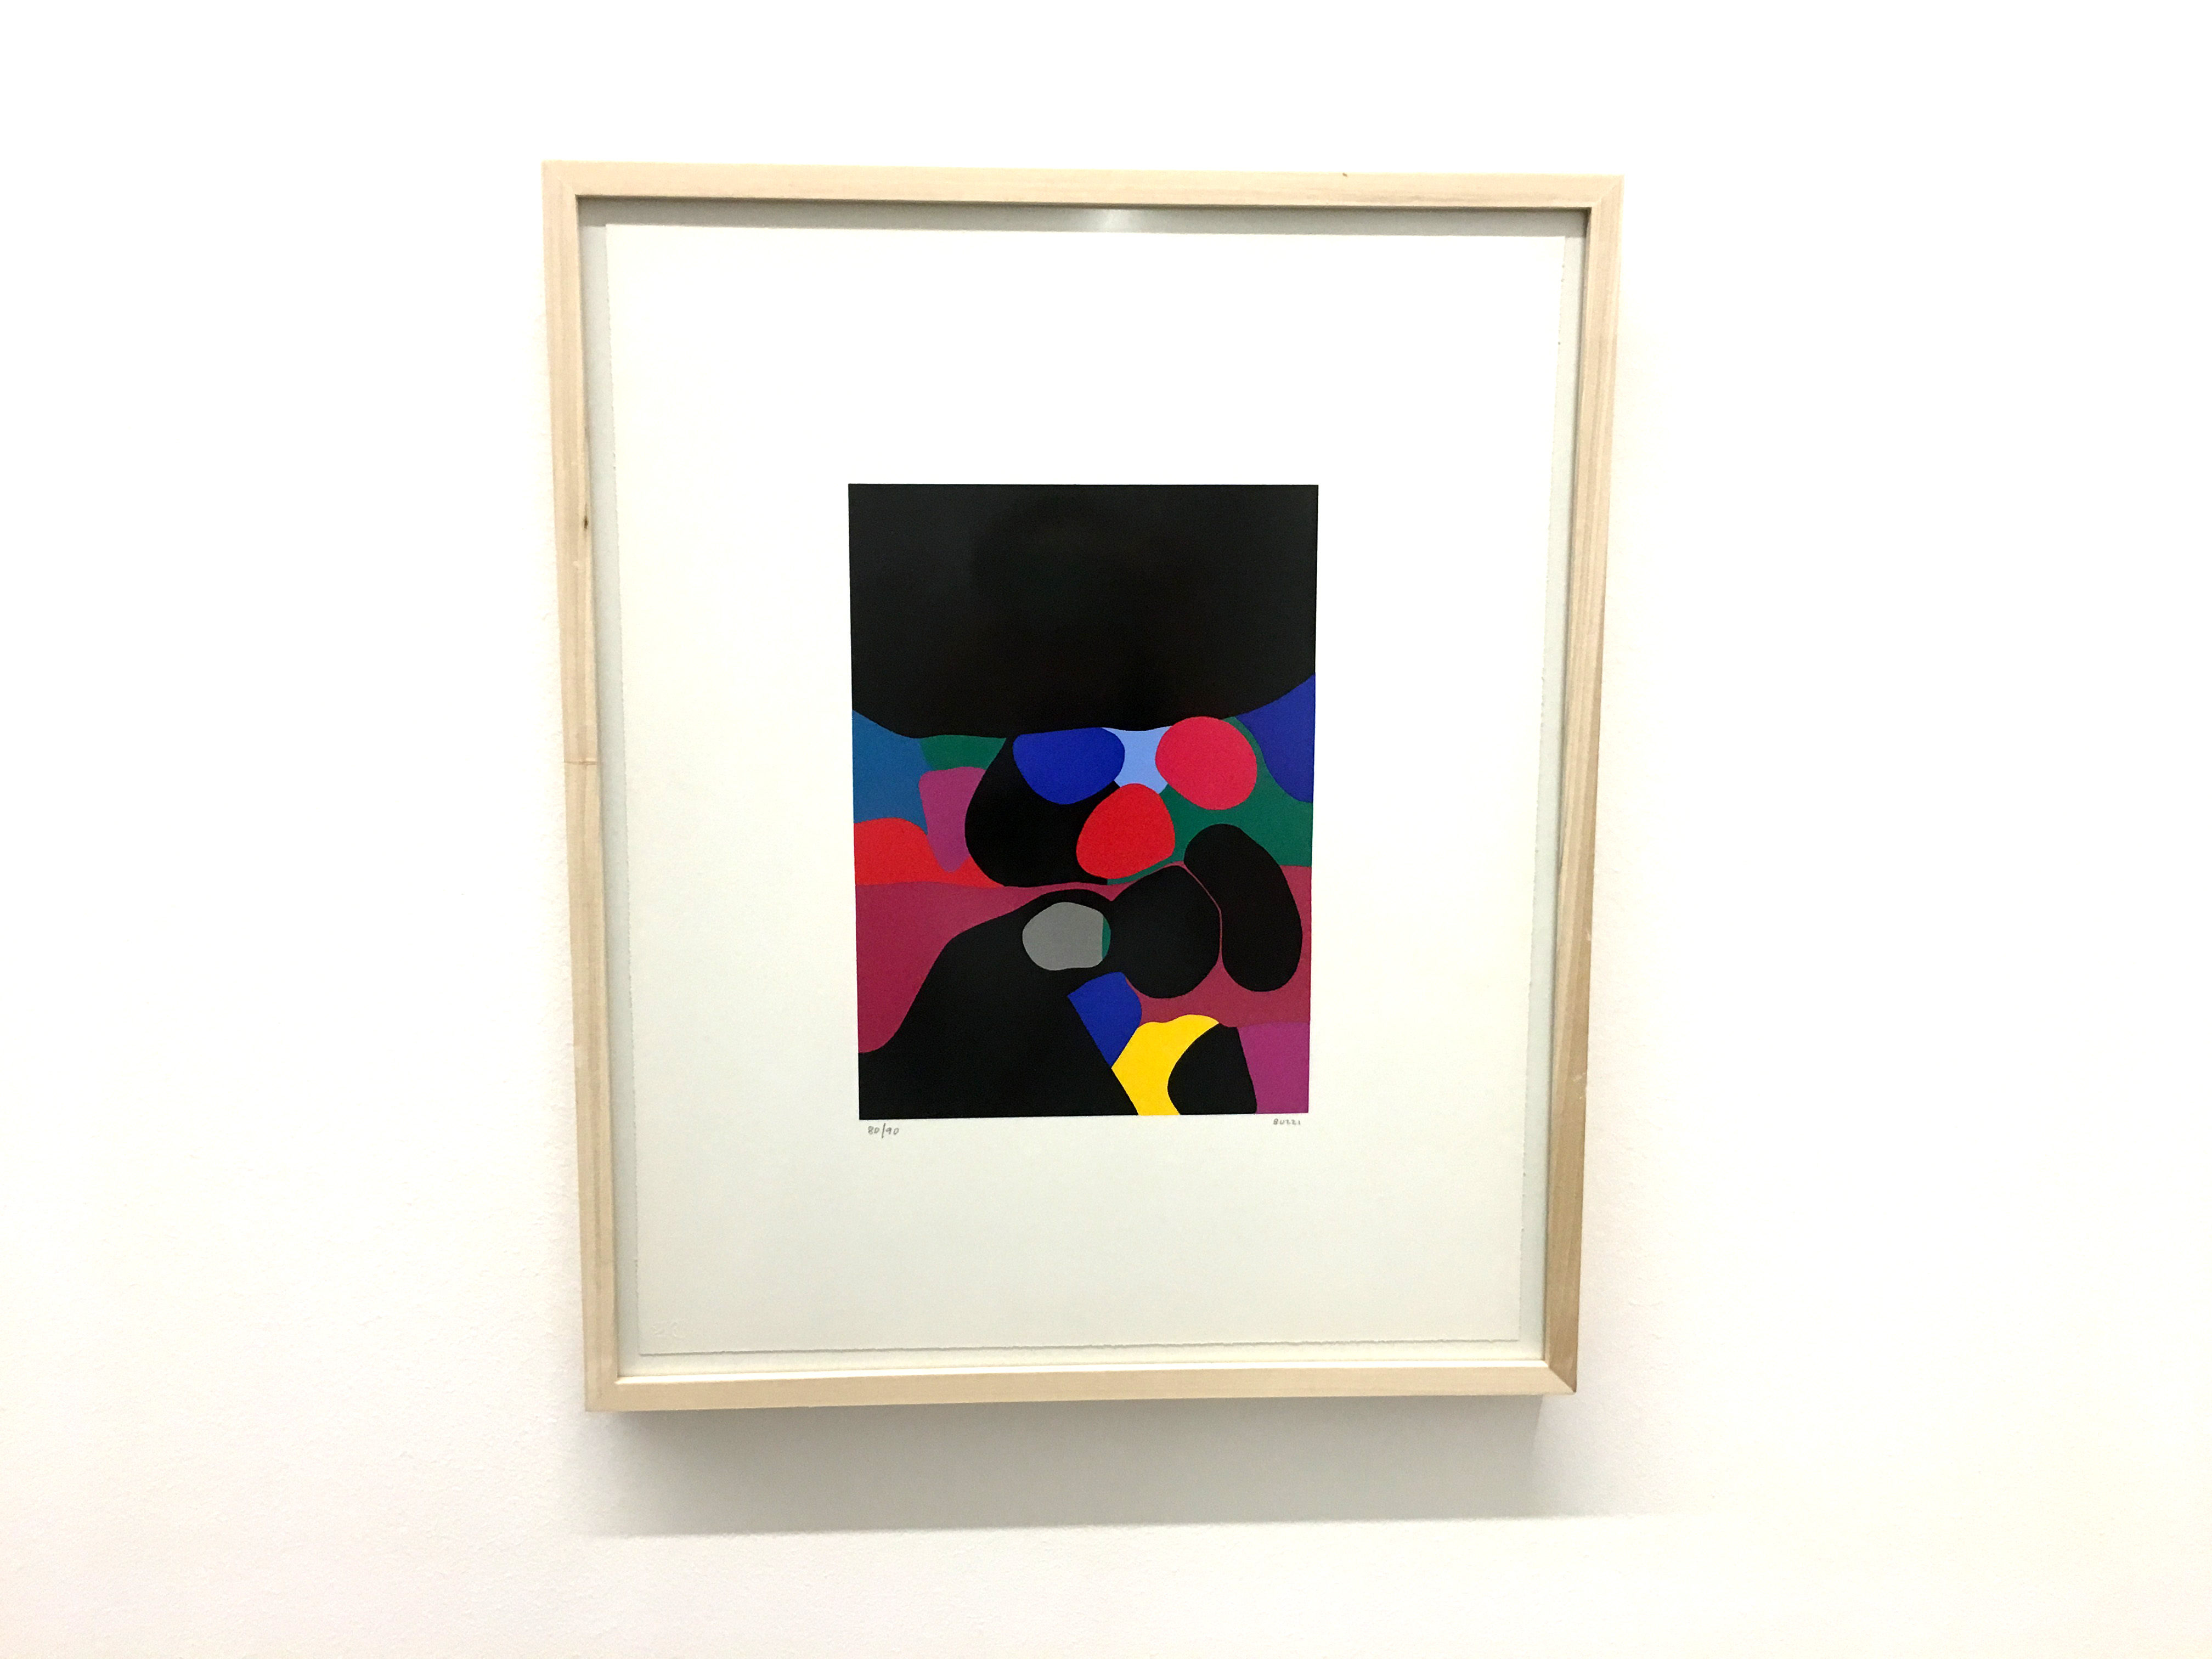 Burri colourful artwork print